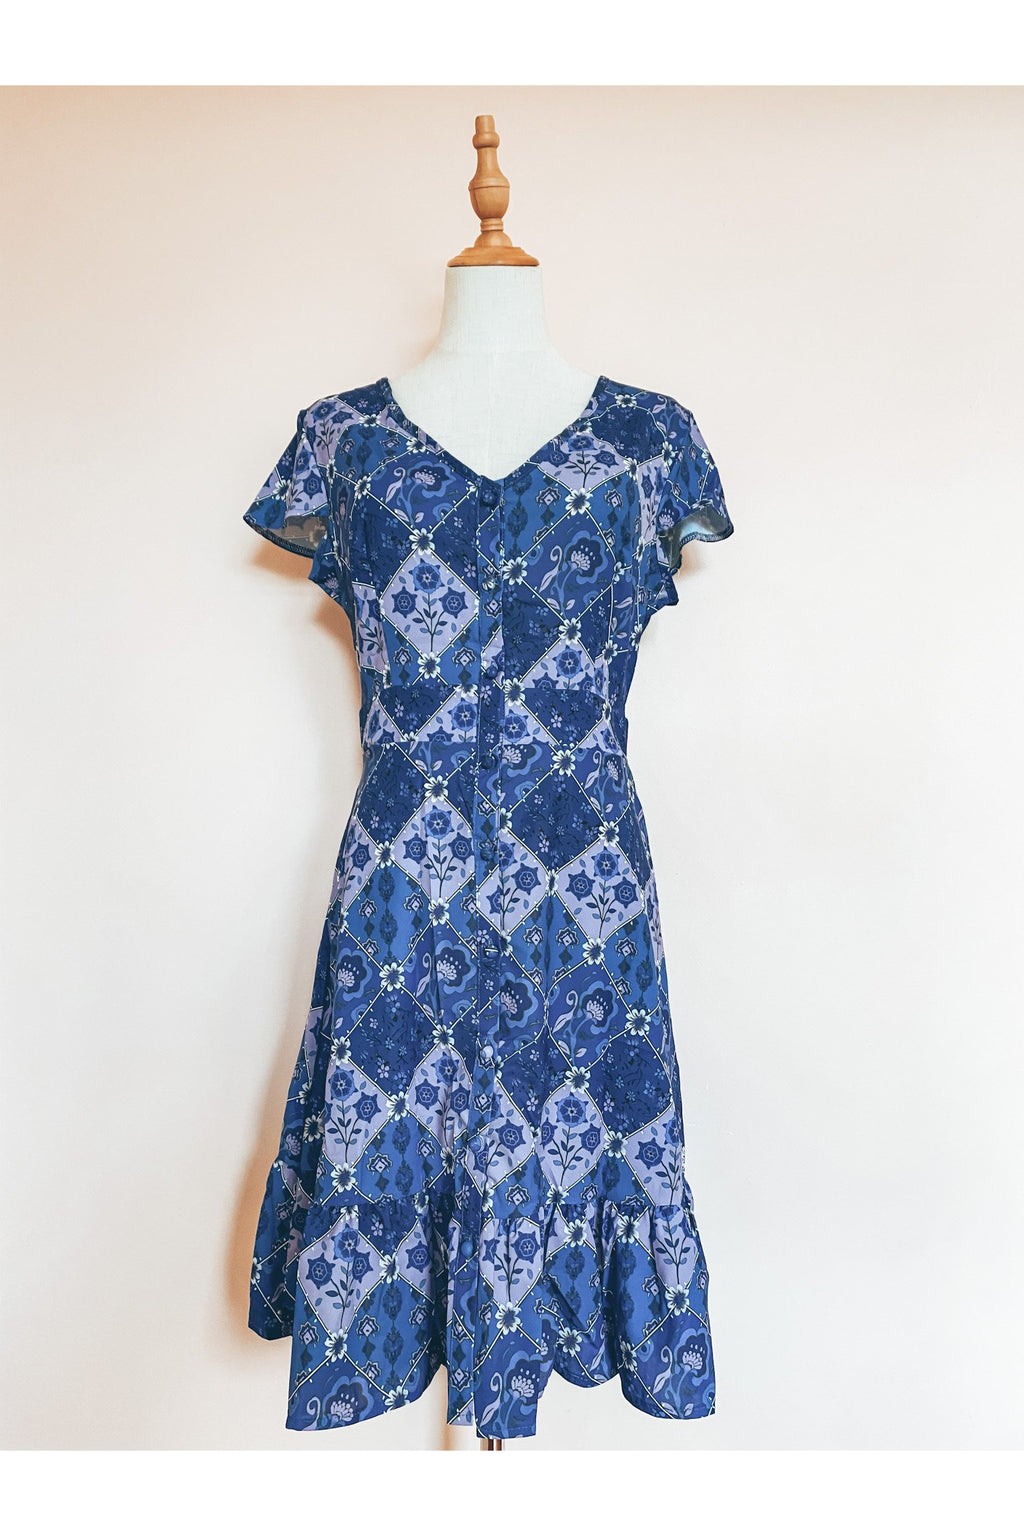 Mosaic Dress (Blue)